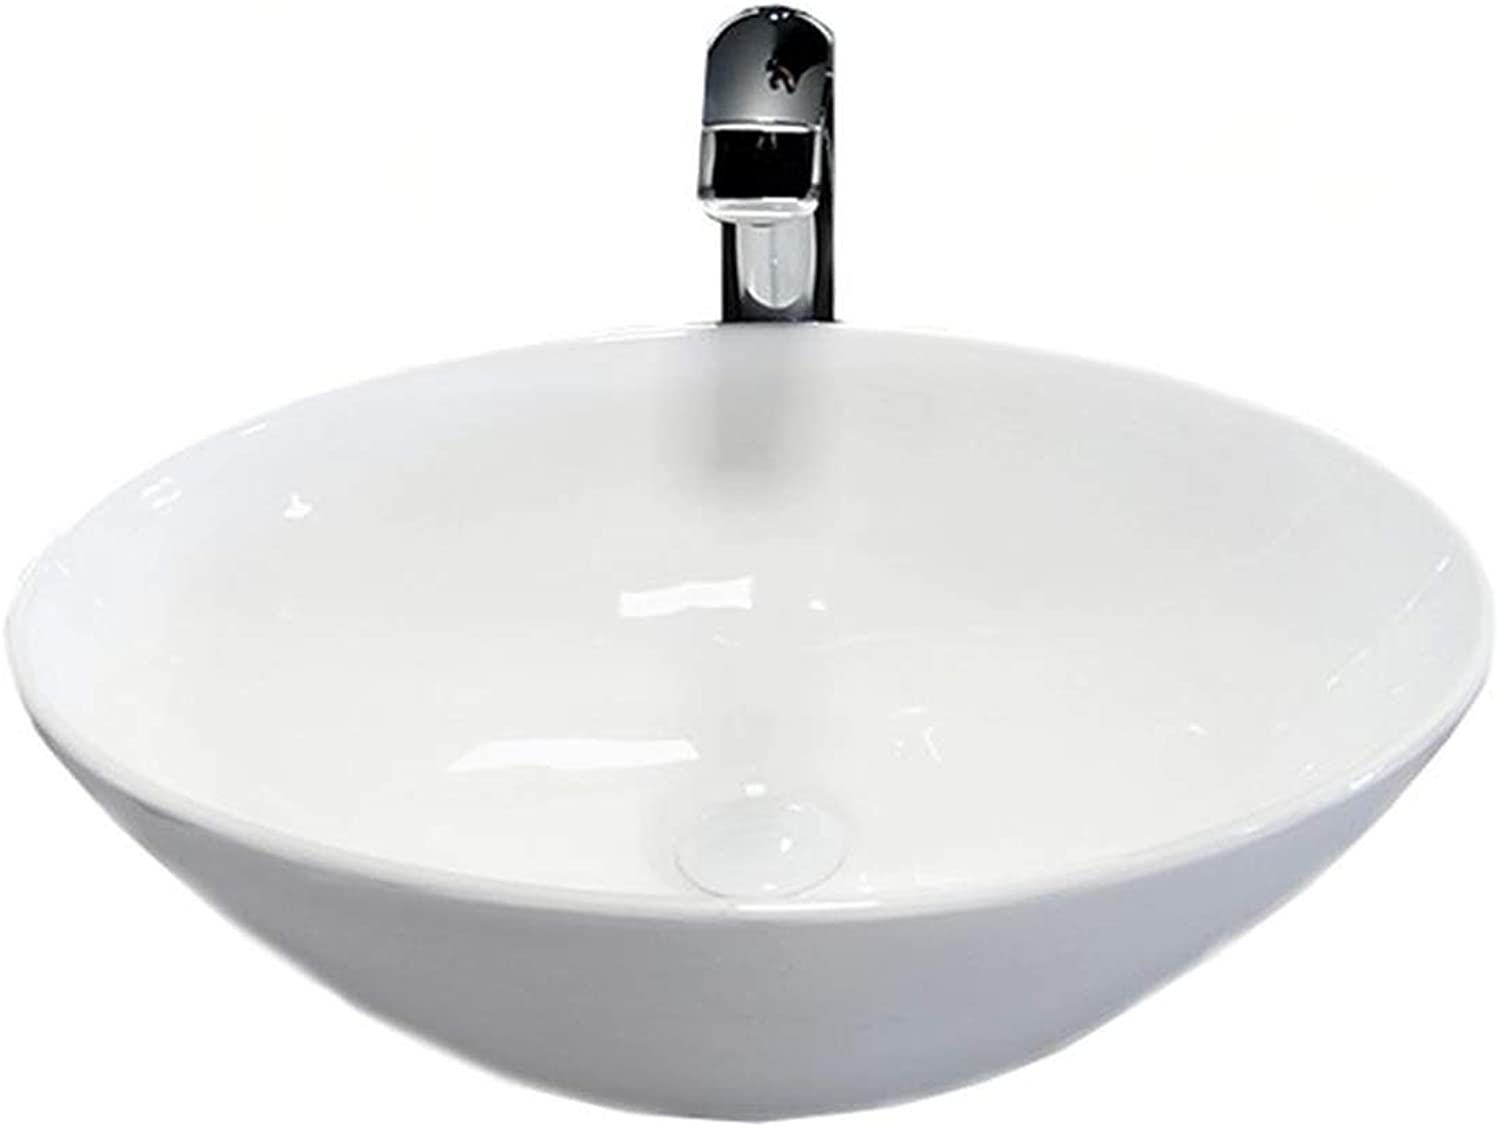 Hana Design Ceramic Oval Wash Basin for Bathroom Guest Toilet 56 cm x 37.8 cm x 14.8 cm